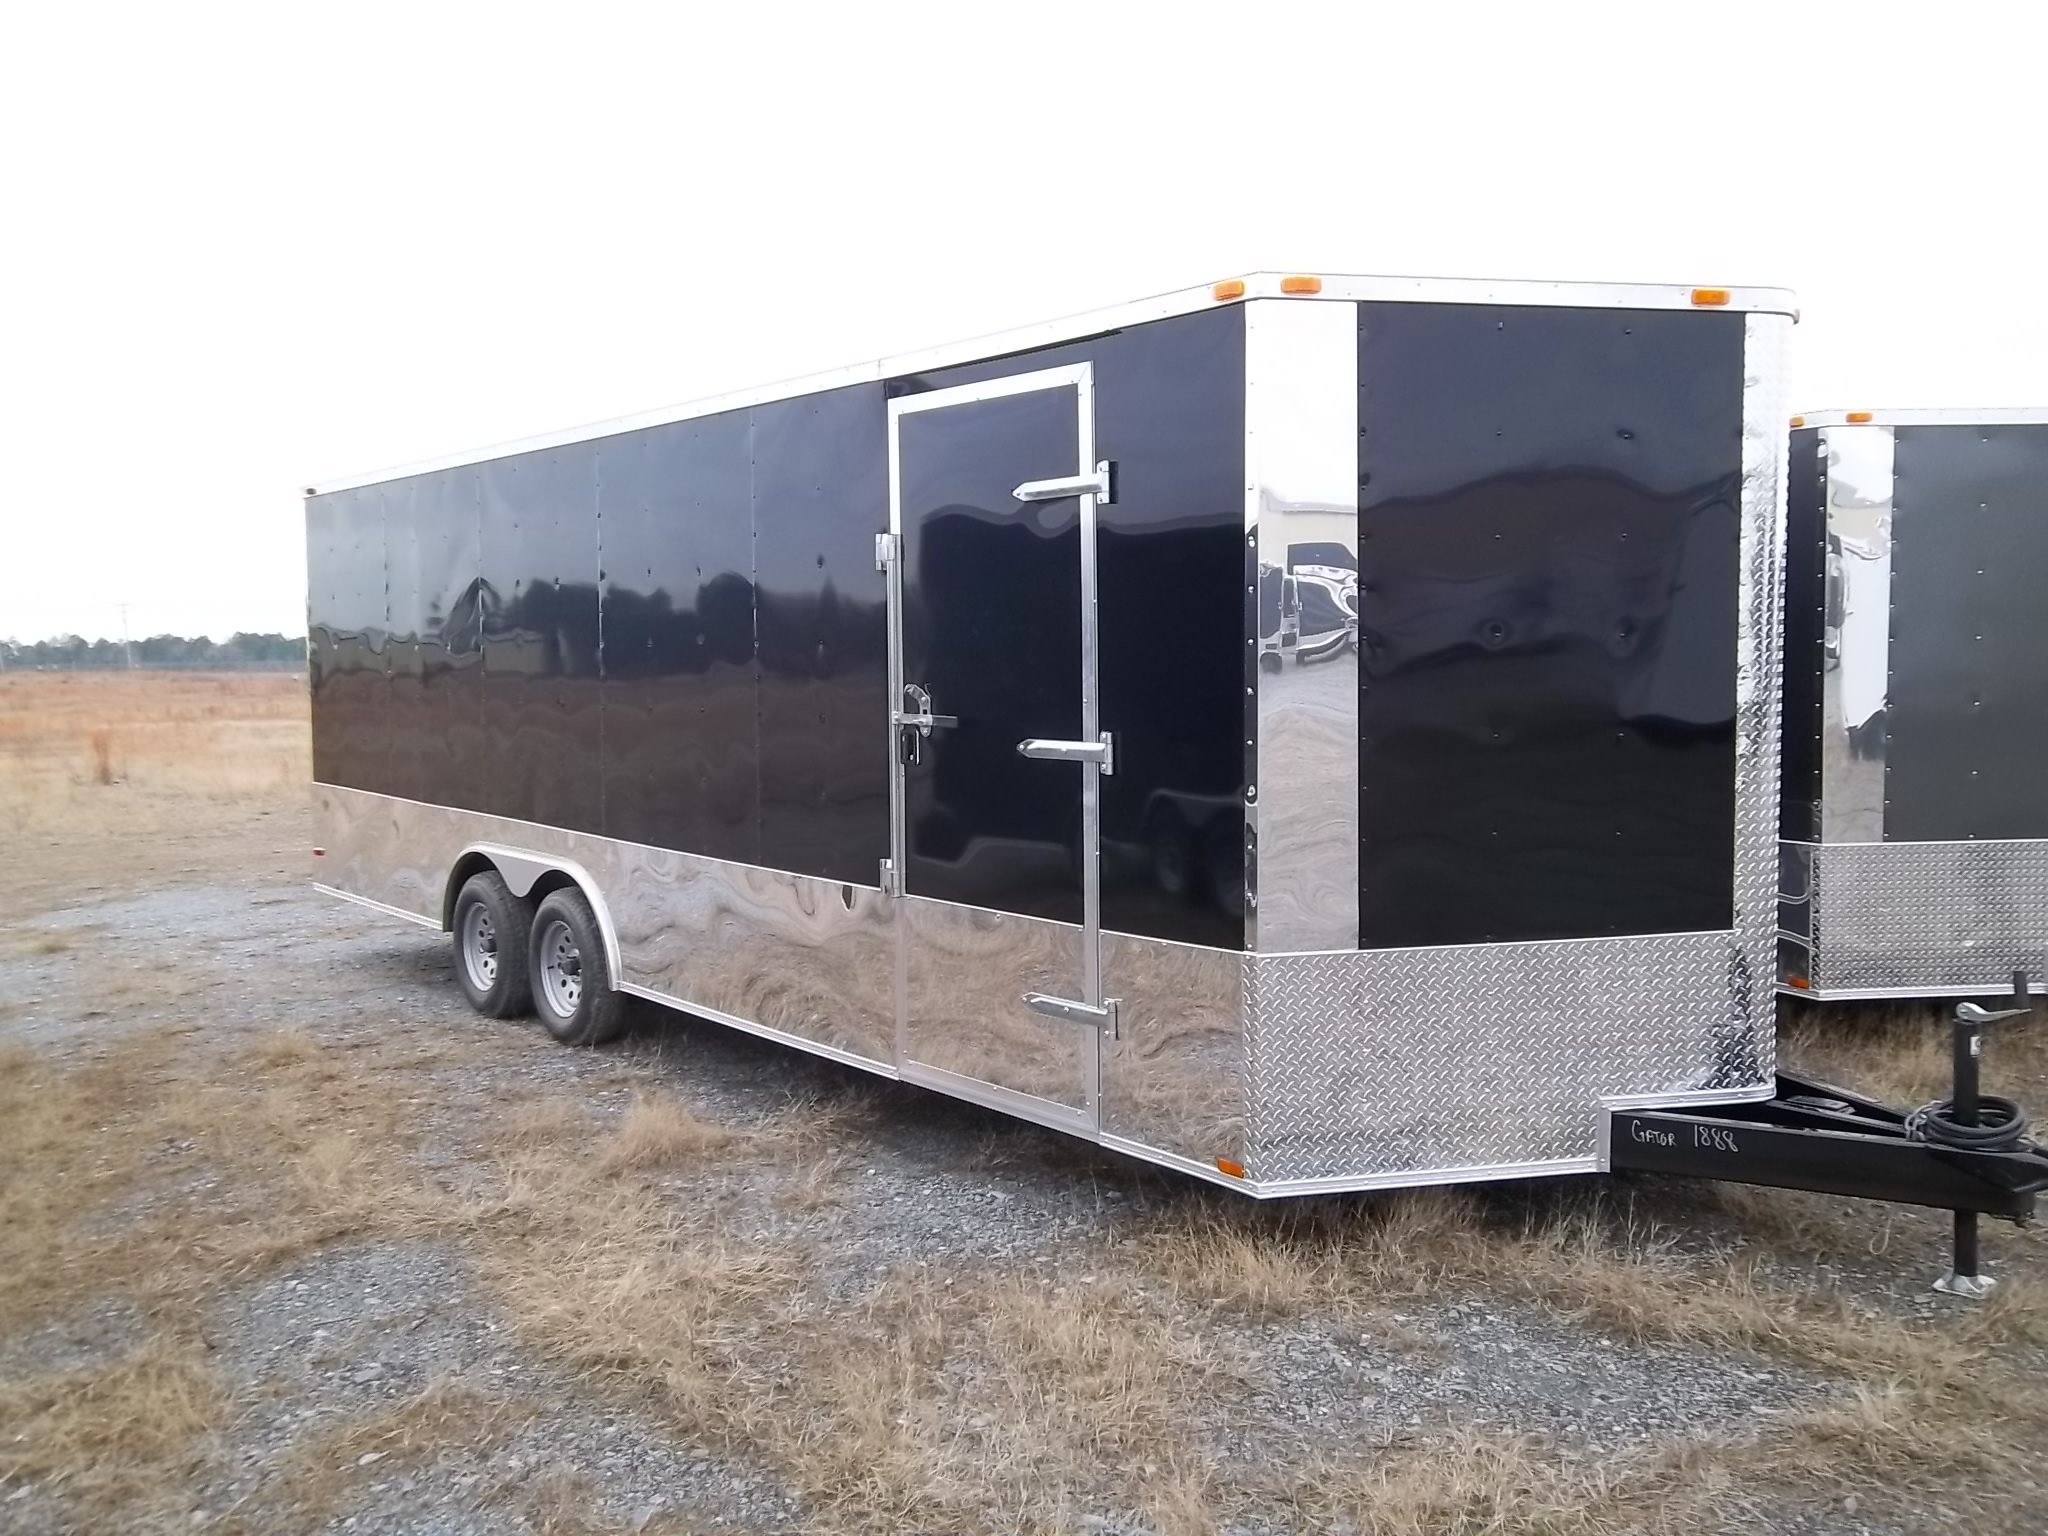 20′ Enclosed Auto Car Hauler Trailer 8.5 x 20 7k GVWR/GWR